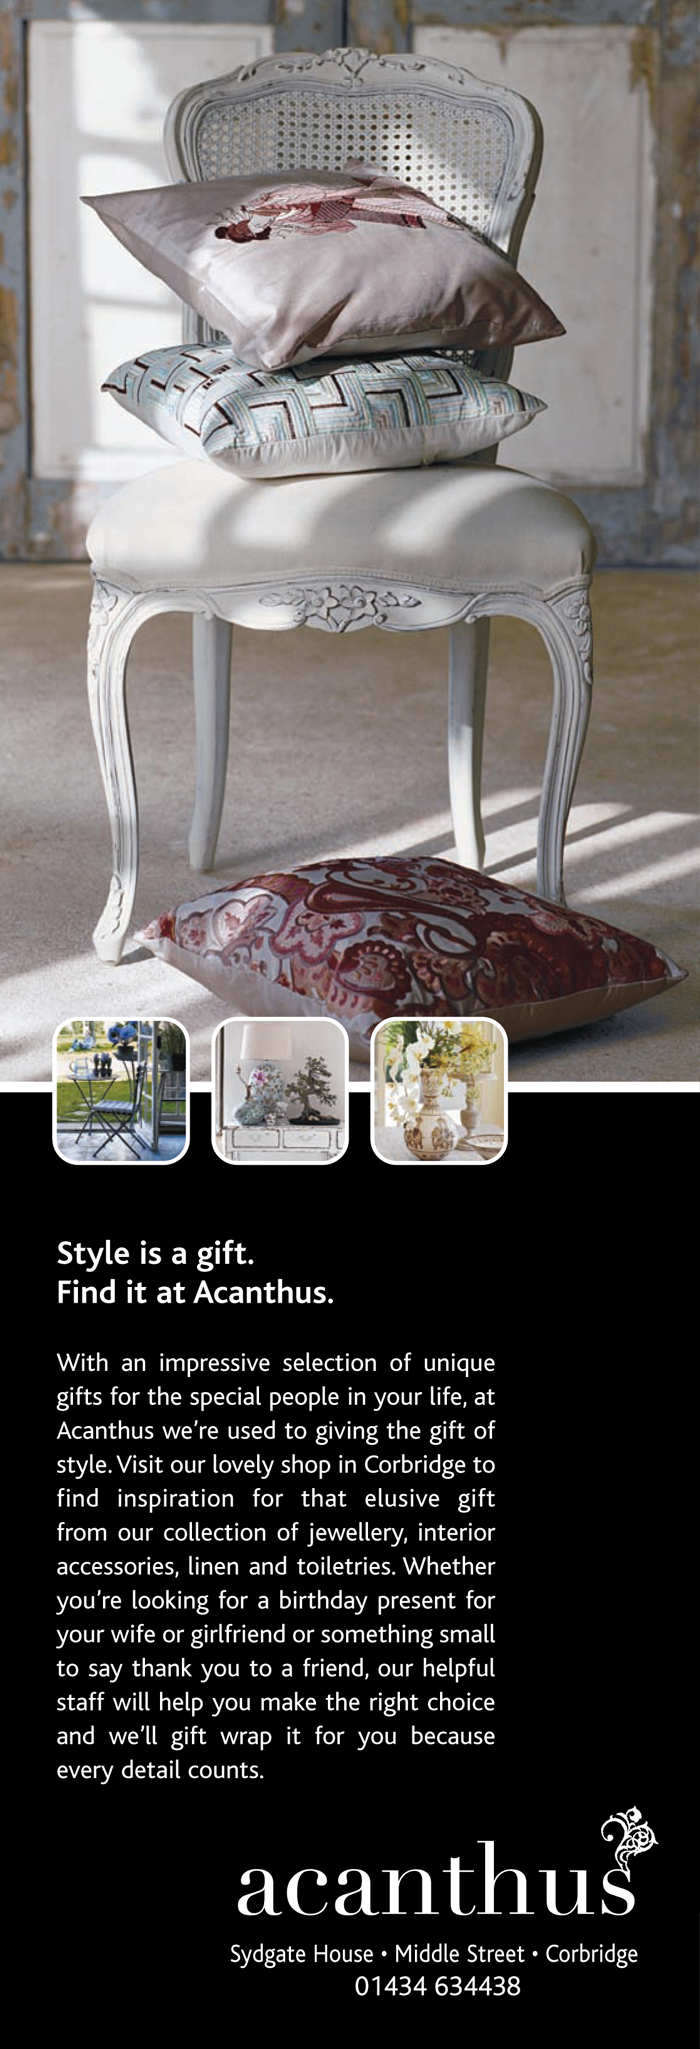 acanthus press ad